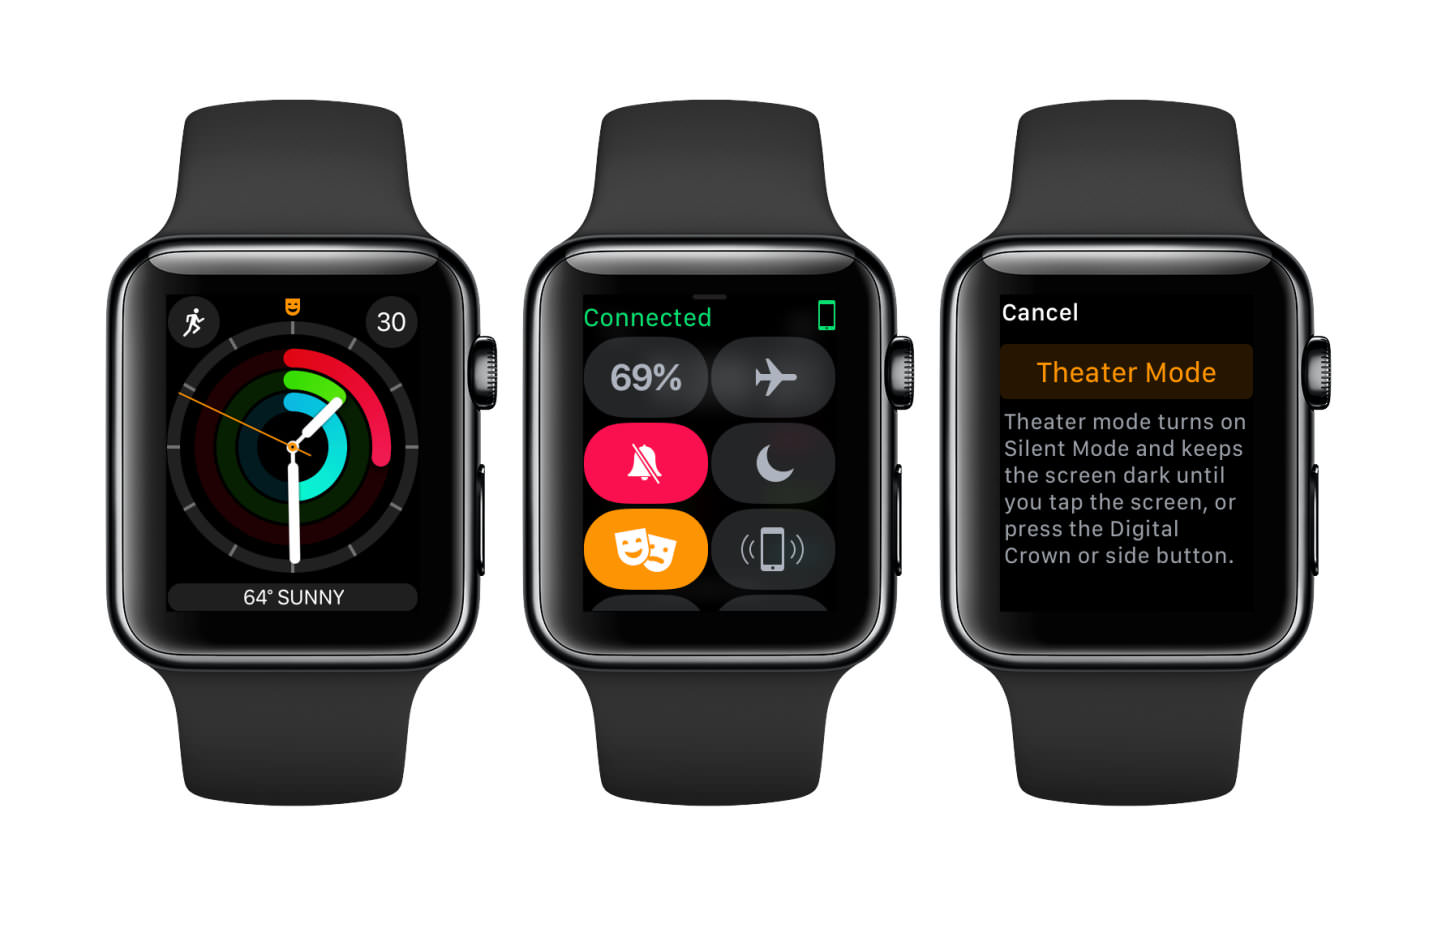 Theater Mode On Apple Watch